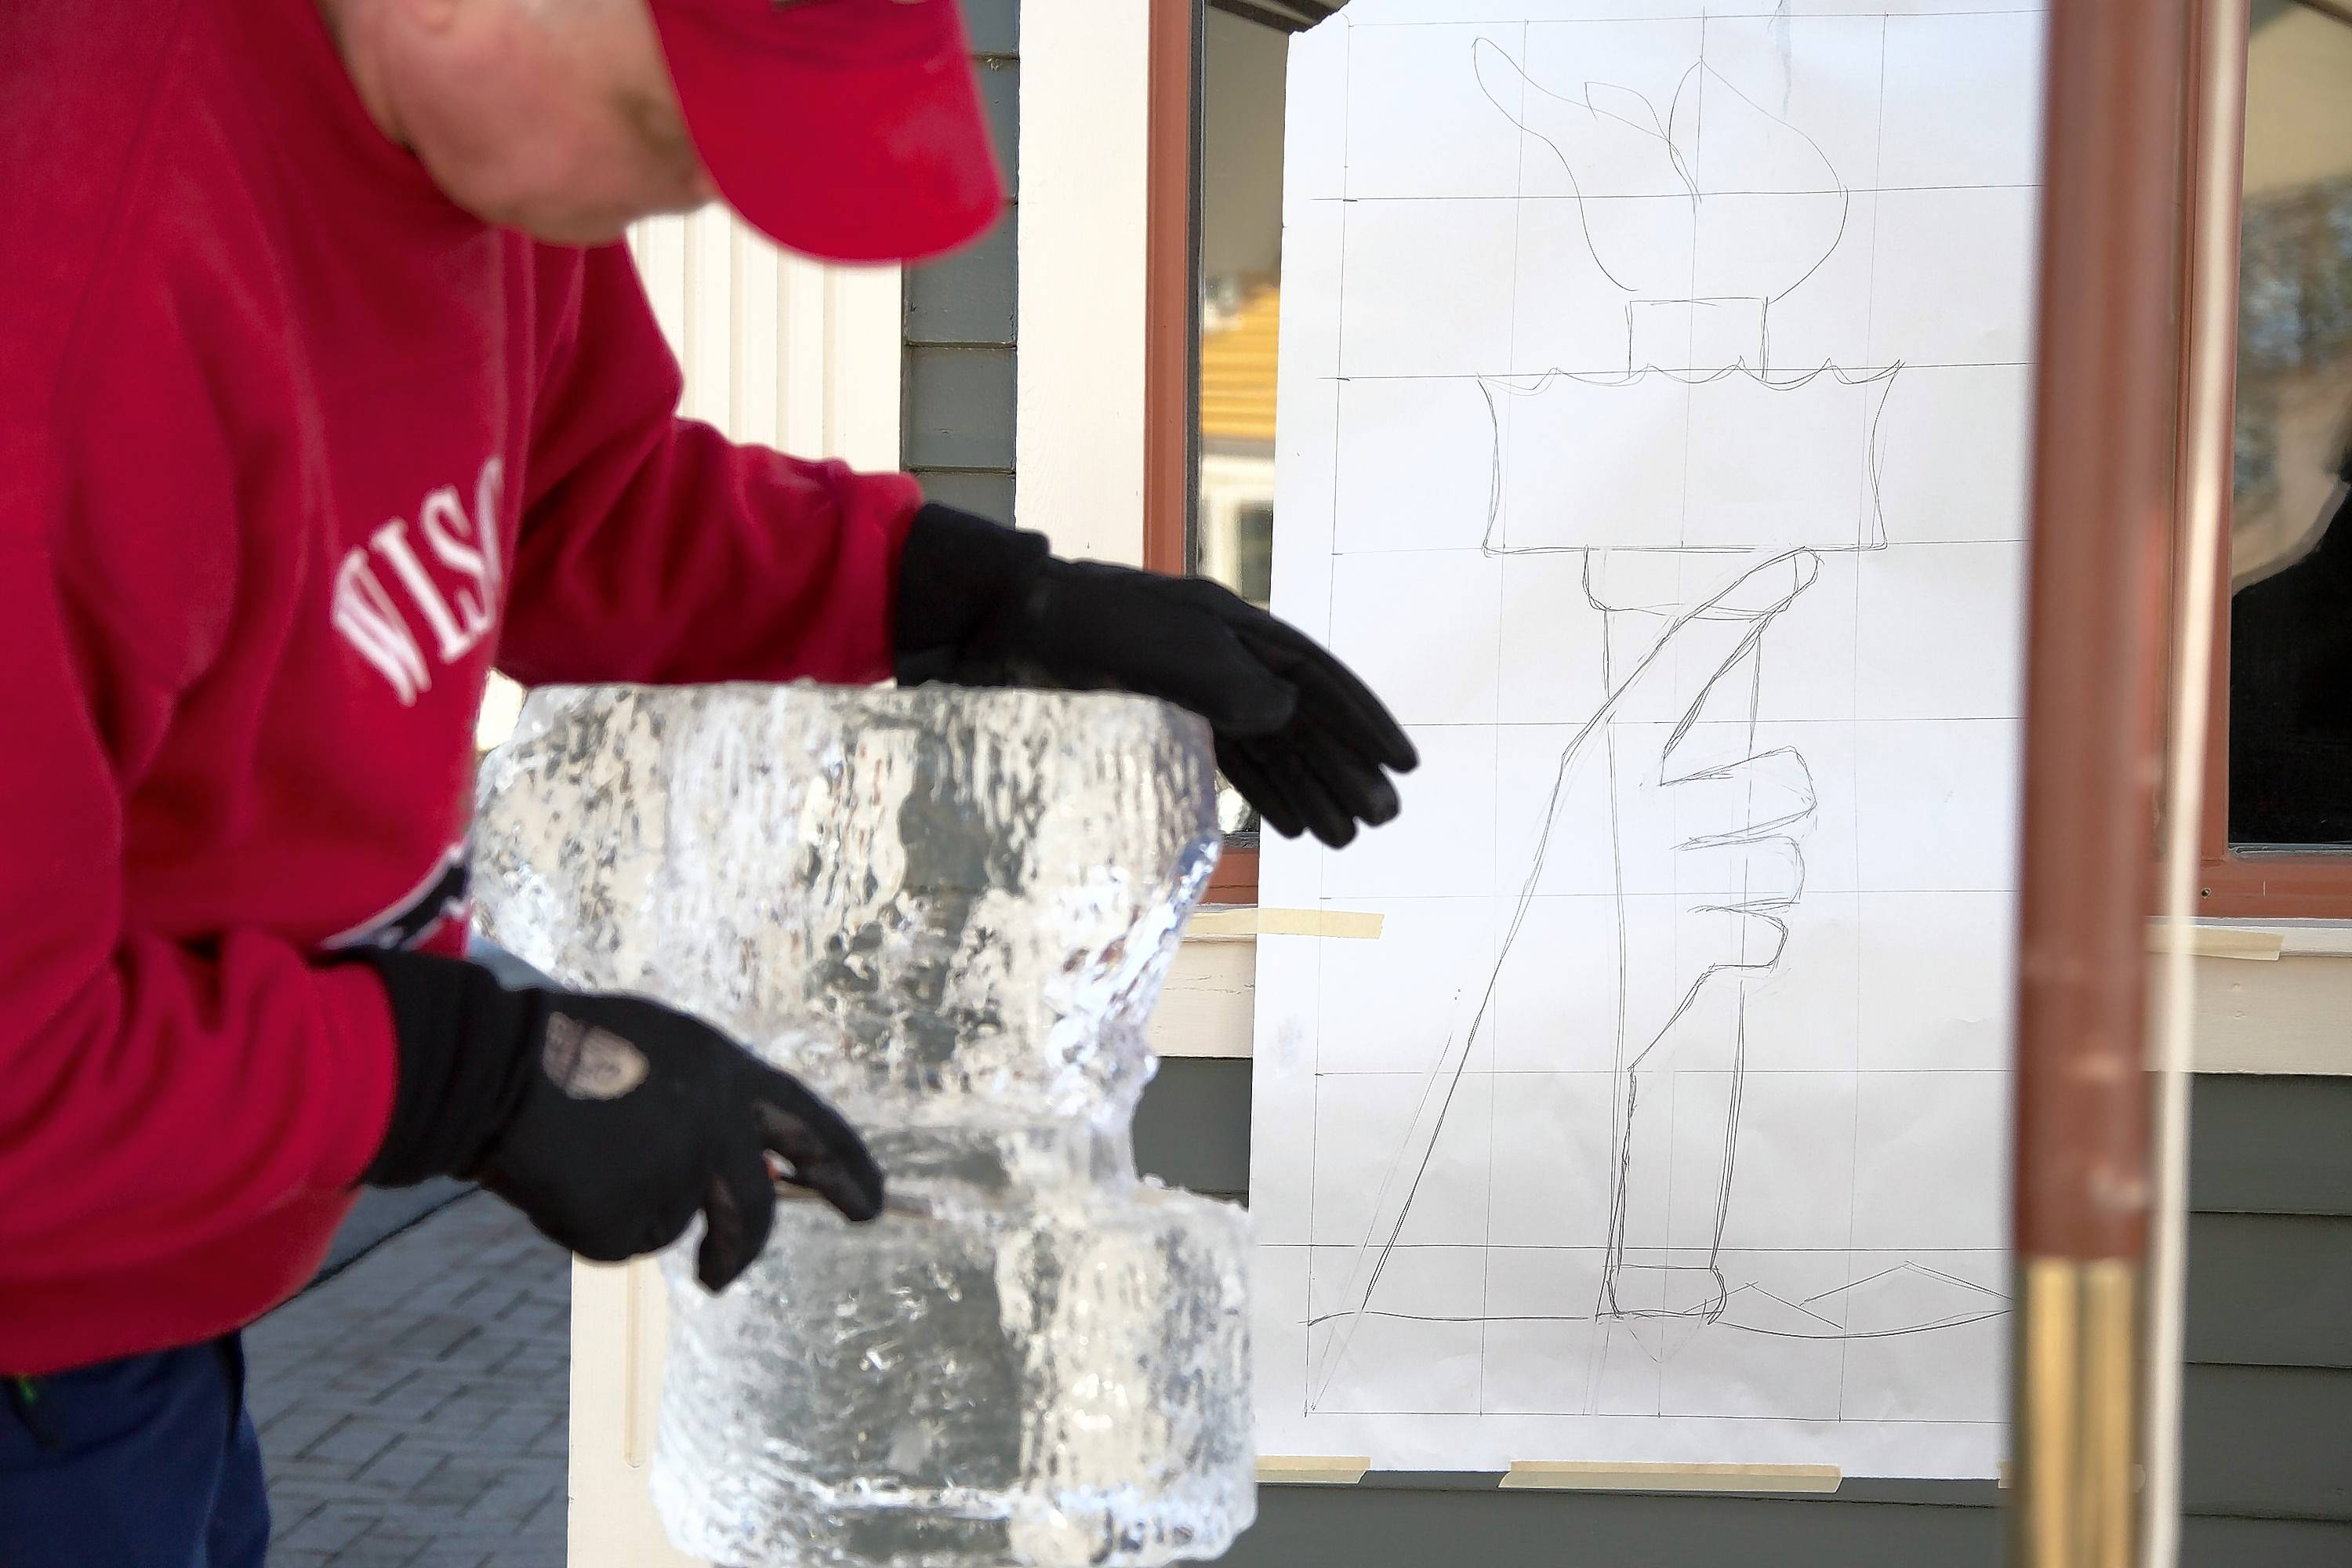 Watch ice-carving demonstrations as part of the 43rd Annual Winter Festival in Cedarburg, Wis., Feb. 18-19.